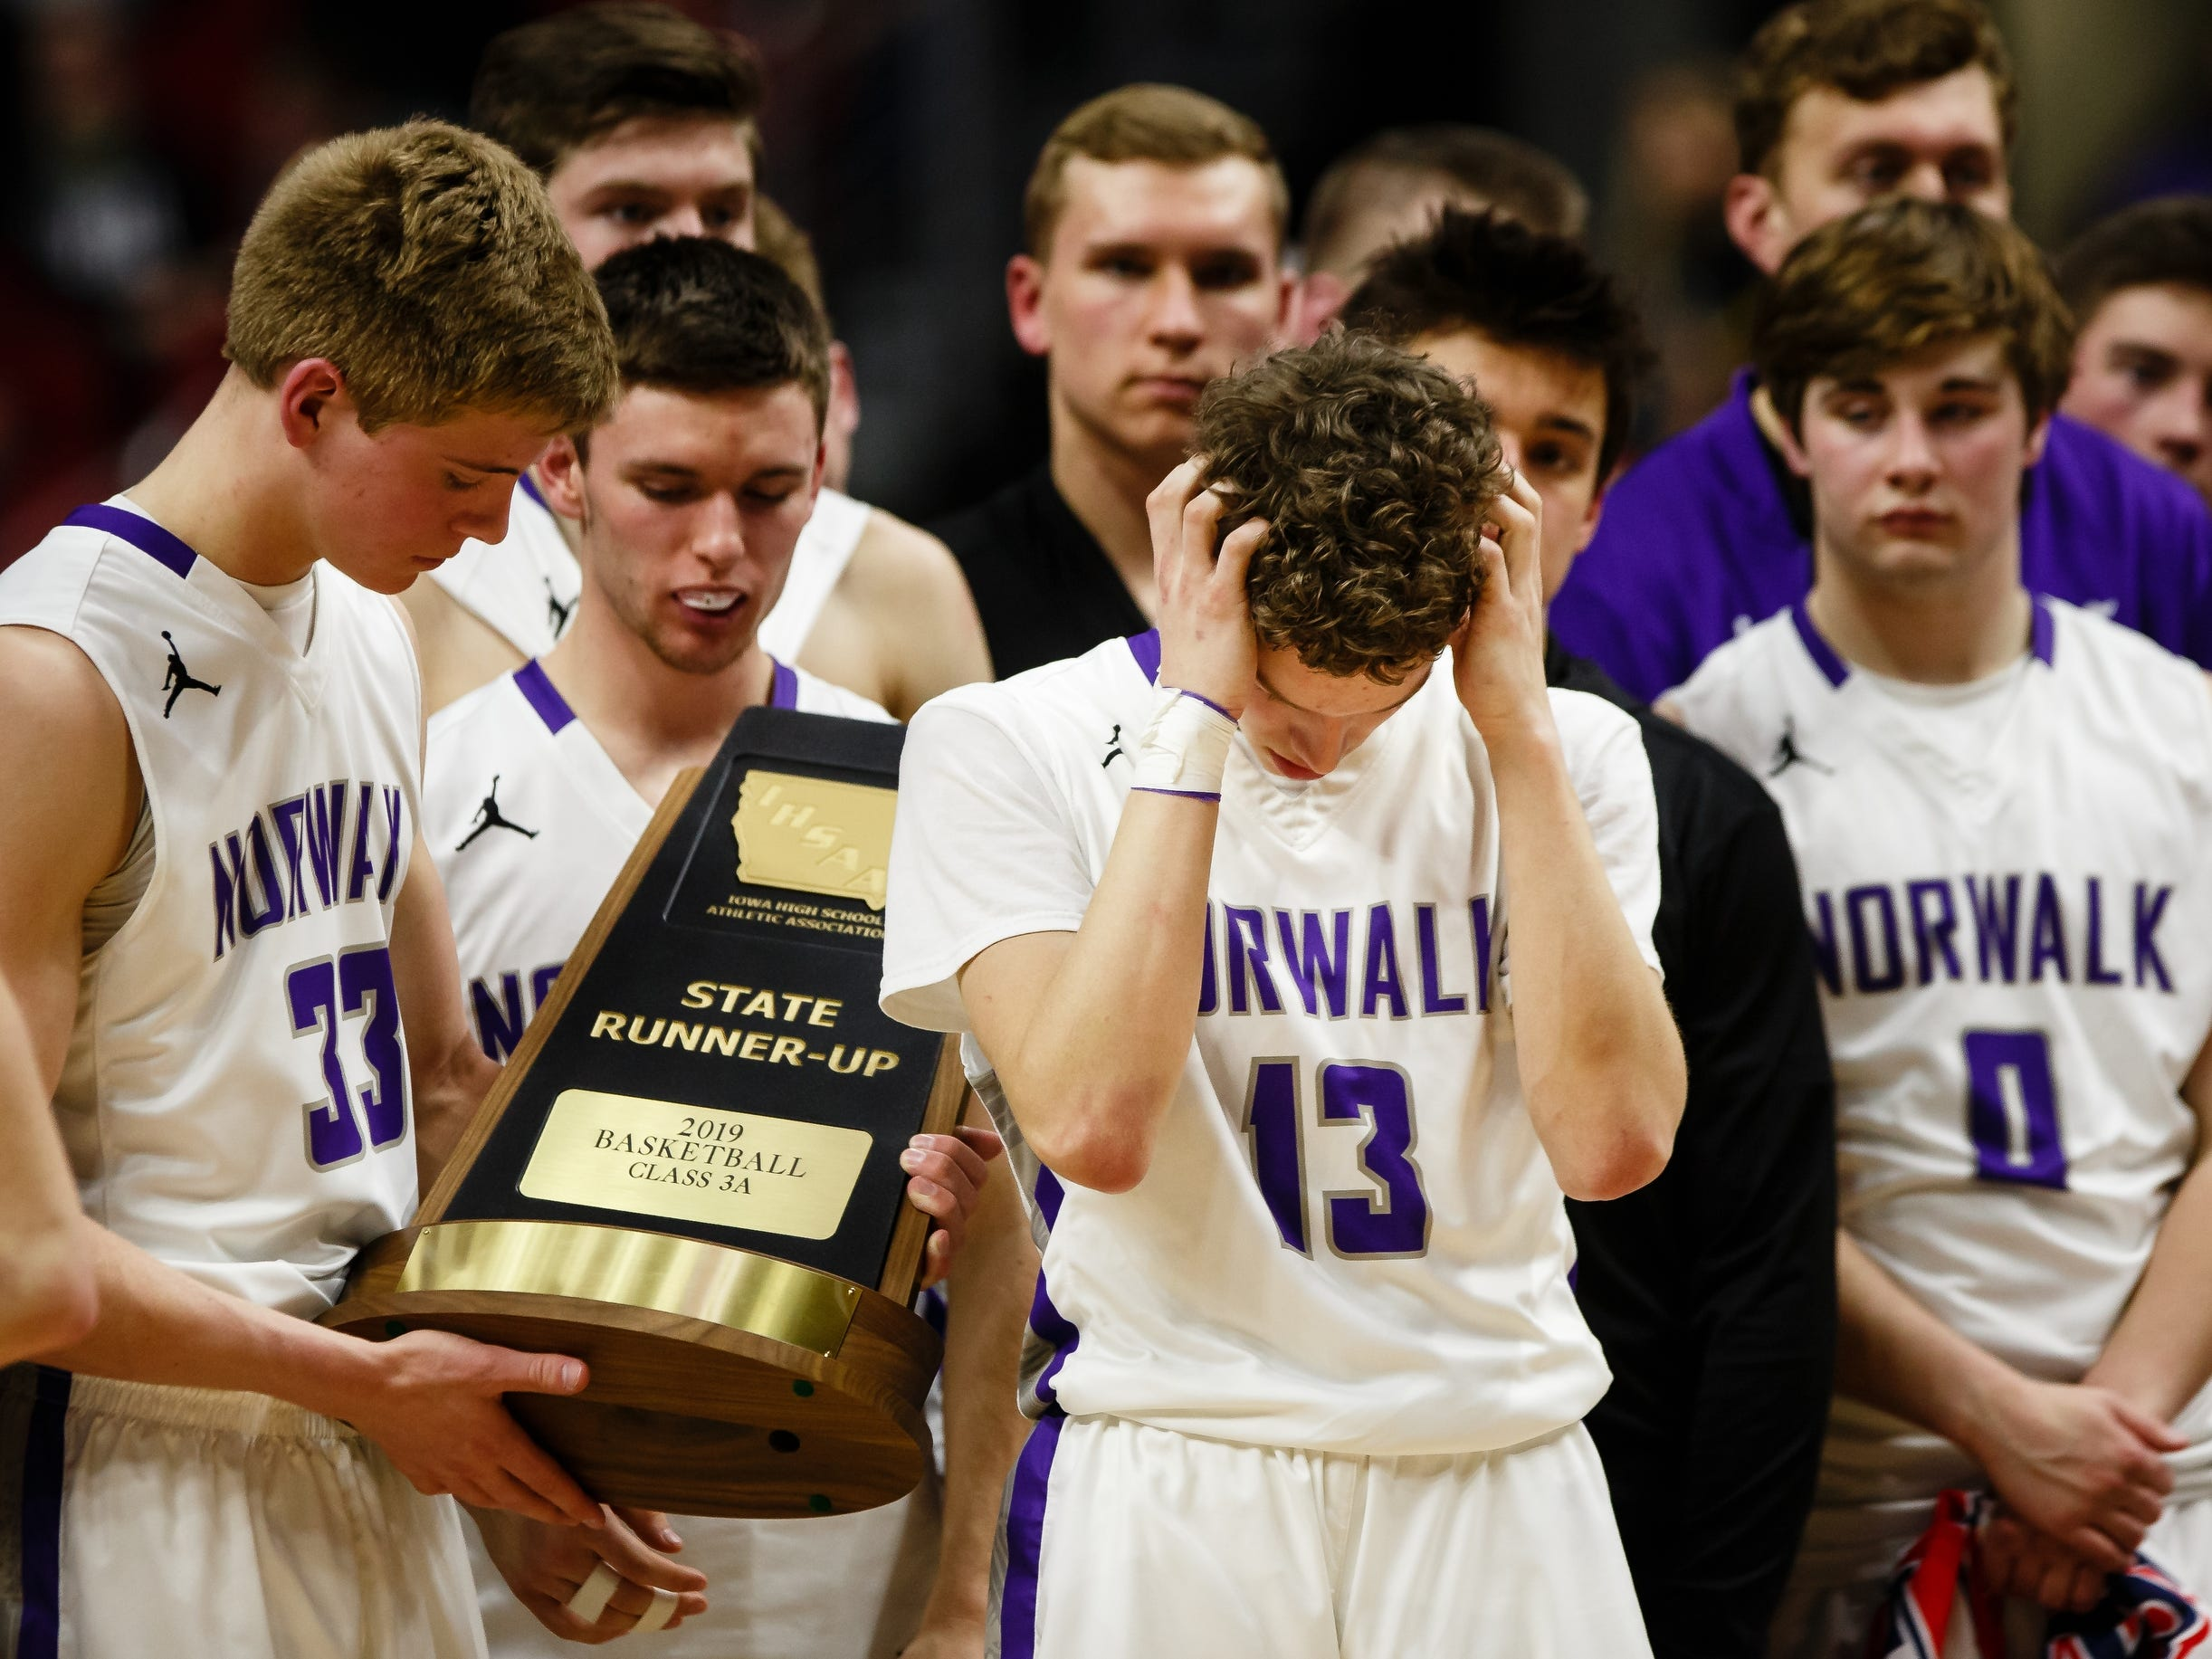 Norwalk's Bowen Born (13) reacts as teammate Norwalk's Sam Rohrer (33) holds their state runner-up trophy after loosing to Oskaloosa 48-44 during their boys 3A state basketball championship game on Friday, March 8, 2019 in Des Moines.